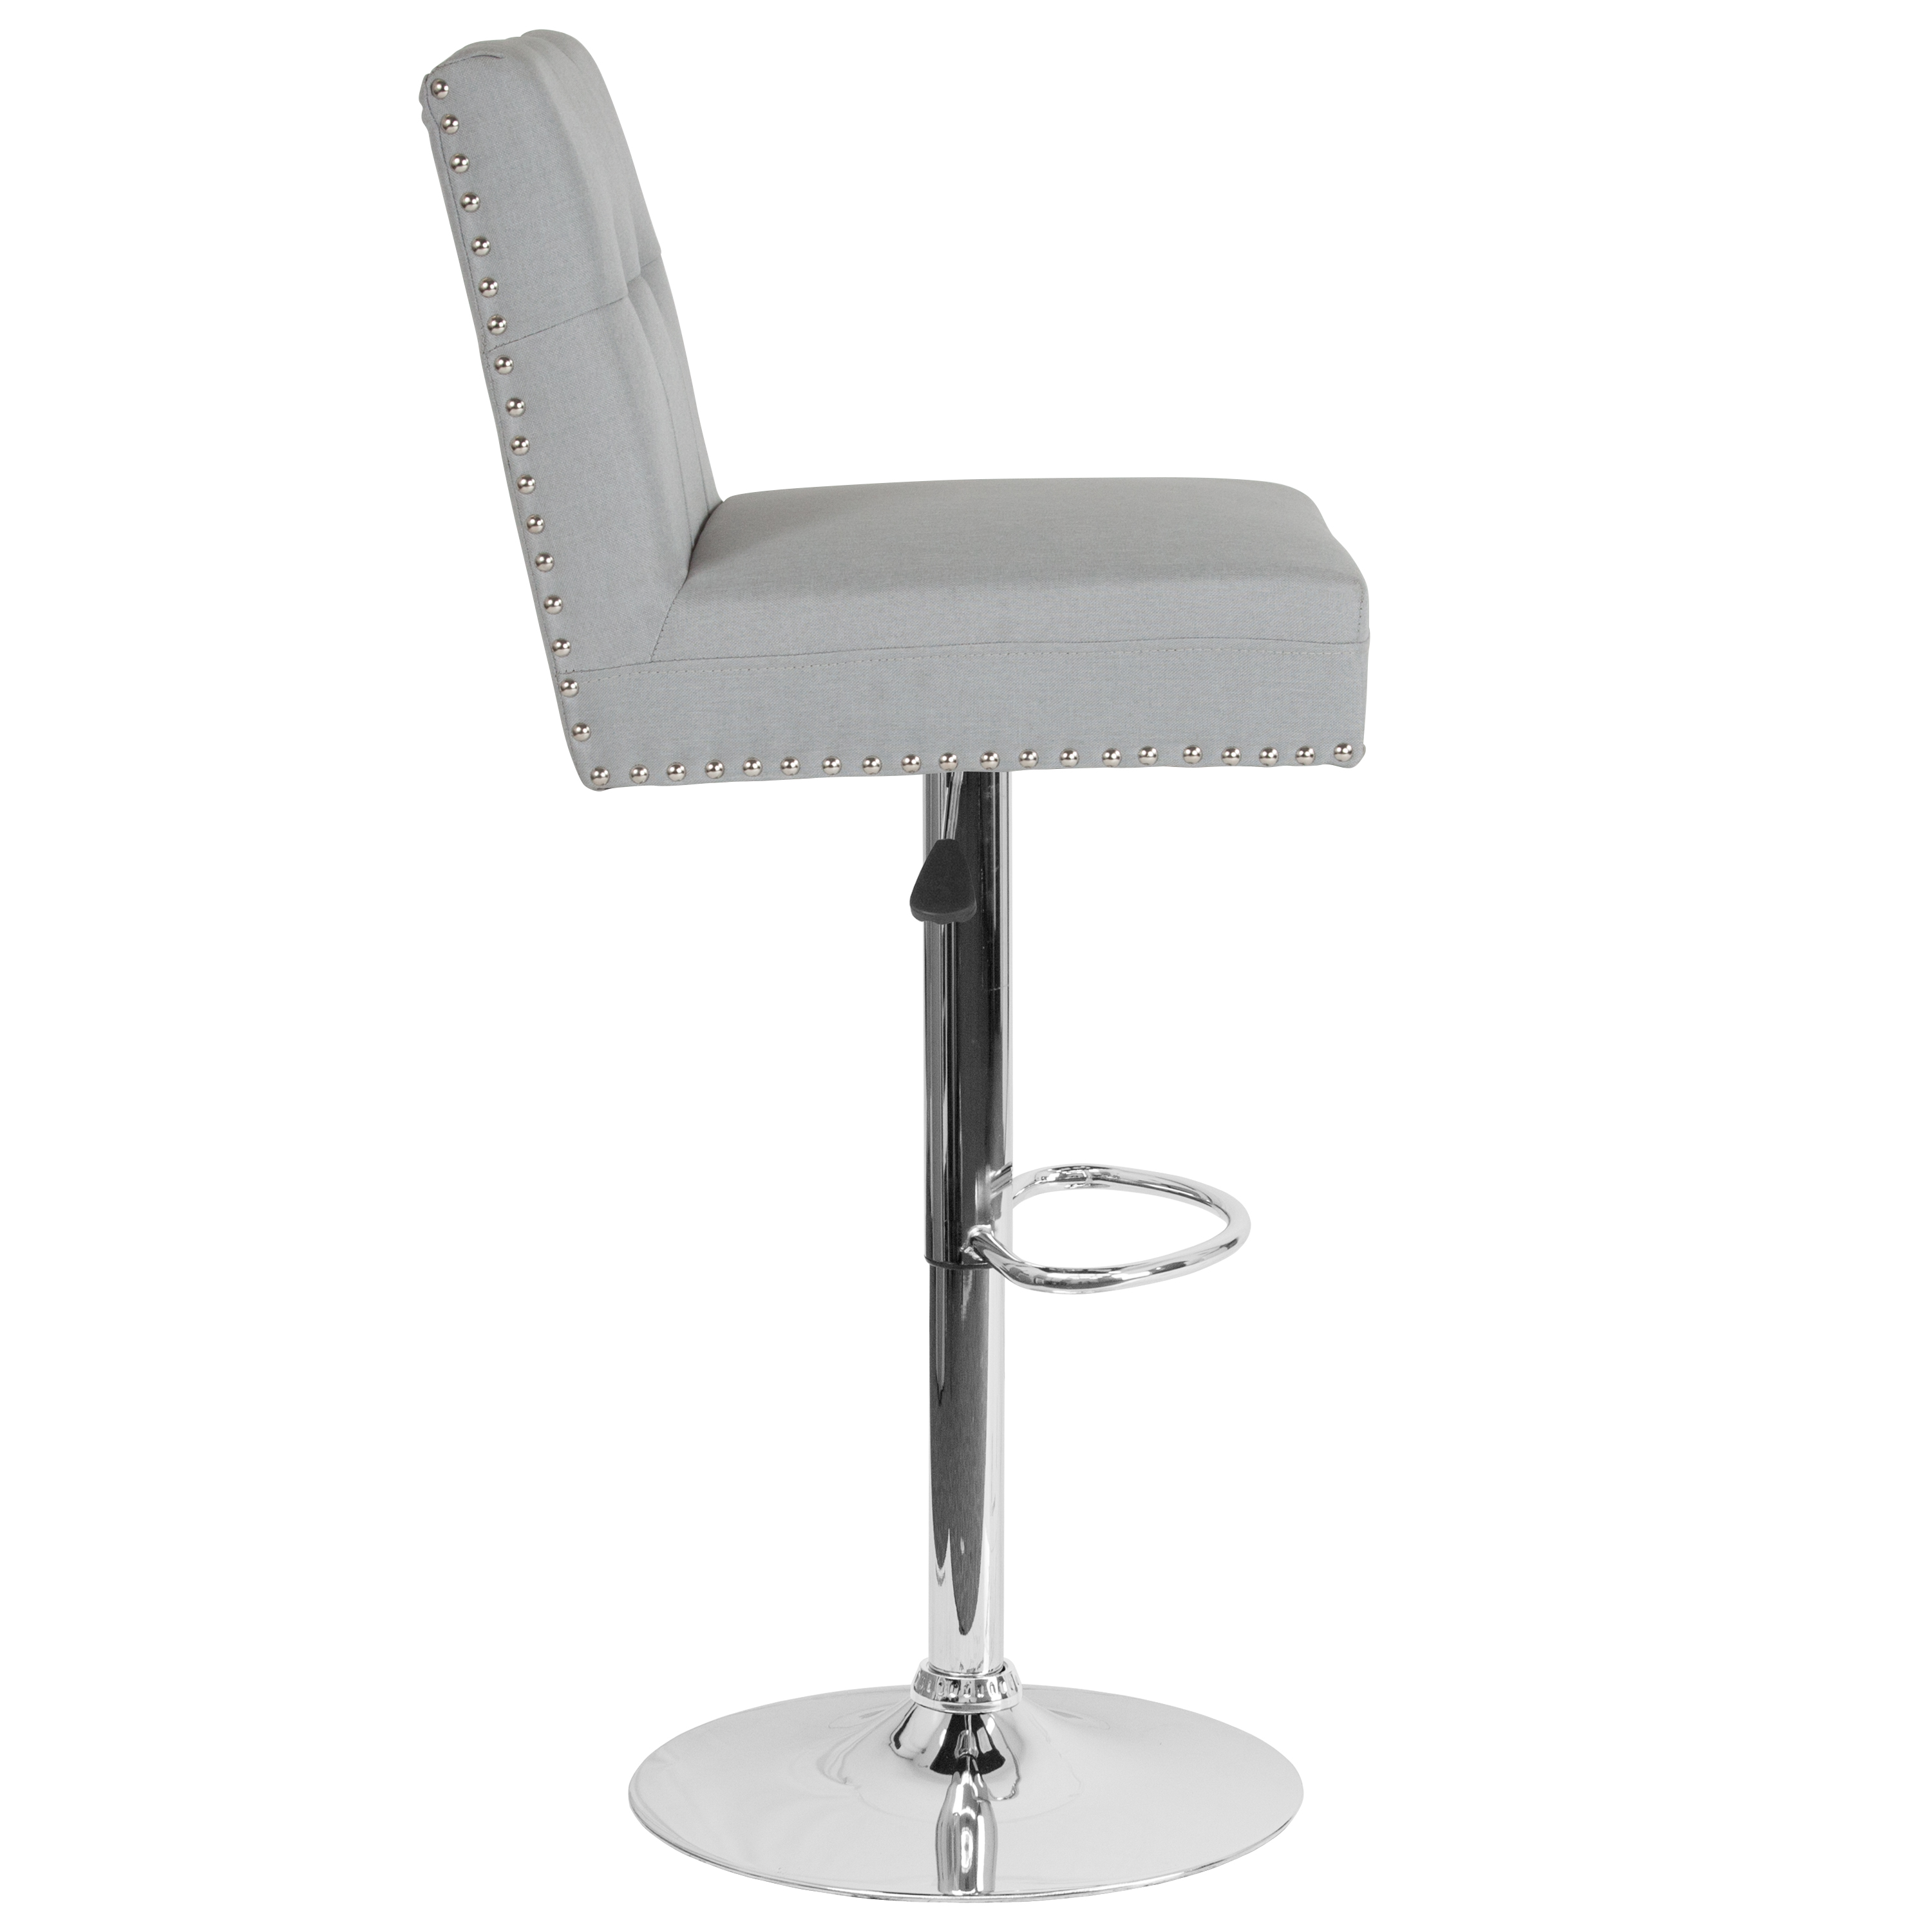 Tufted Back Adjustable Height Barstool With Accent Nail